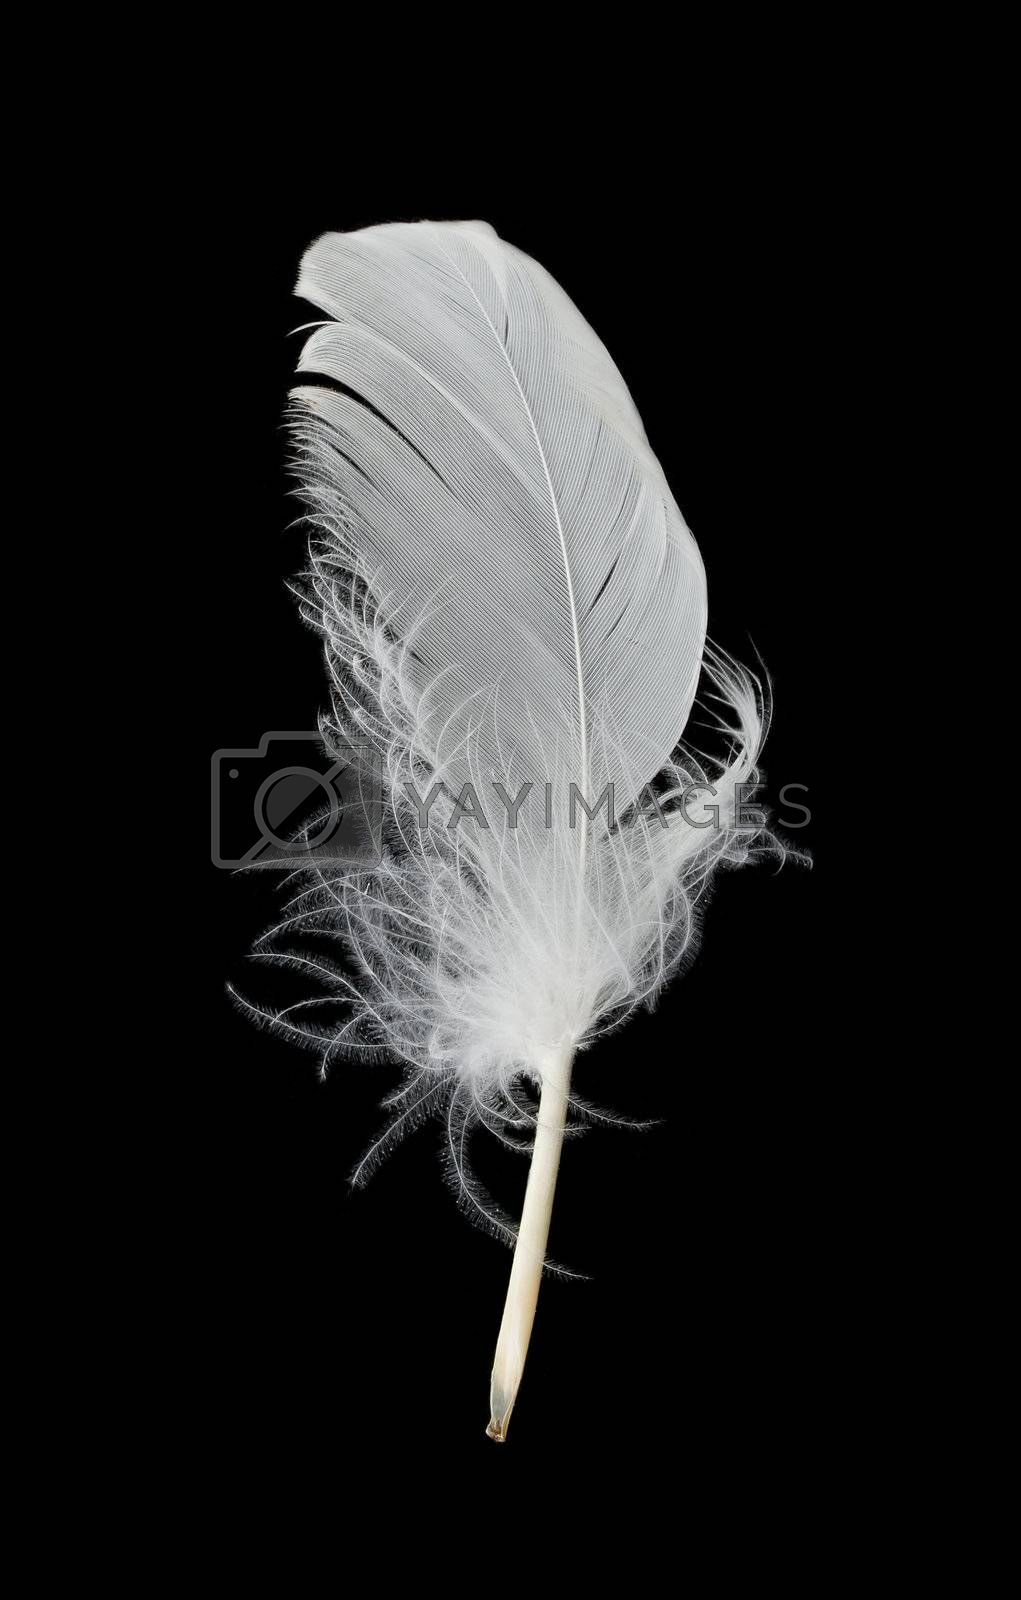 close-up white feather, isolated on black